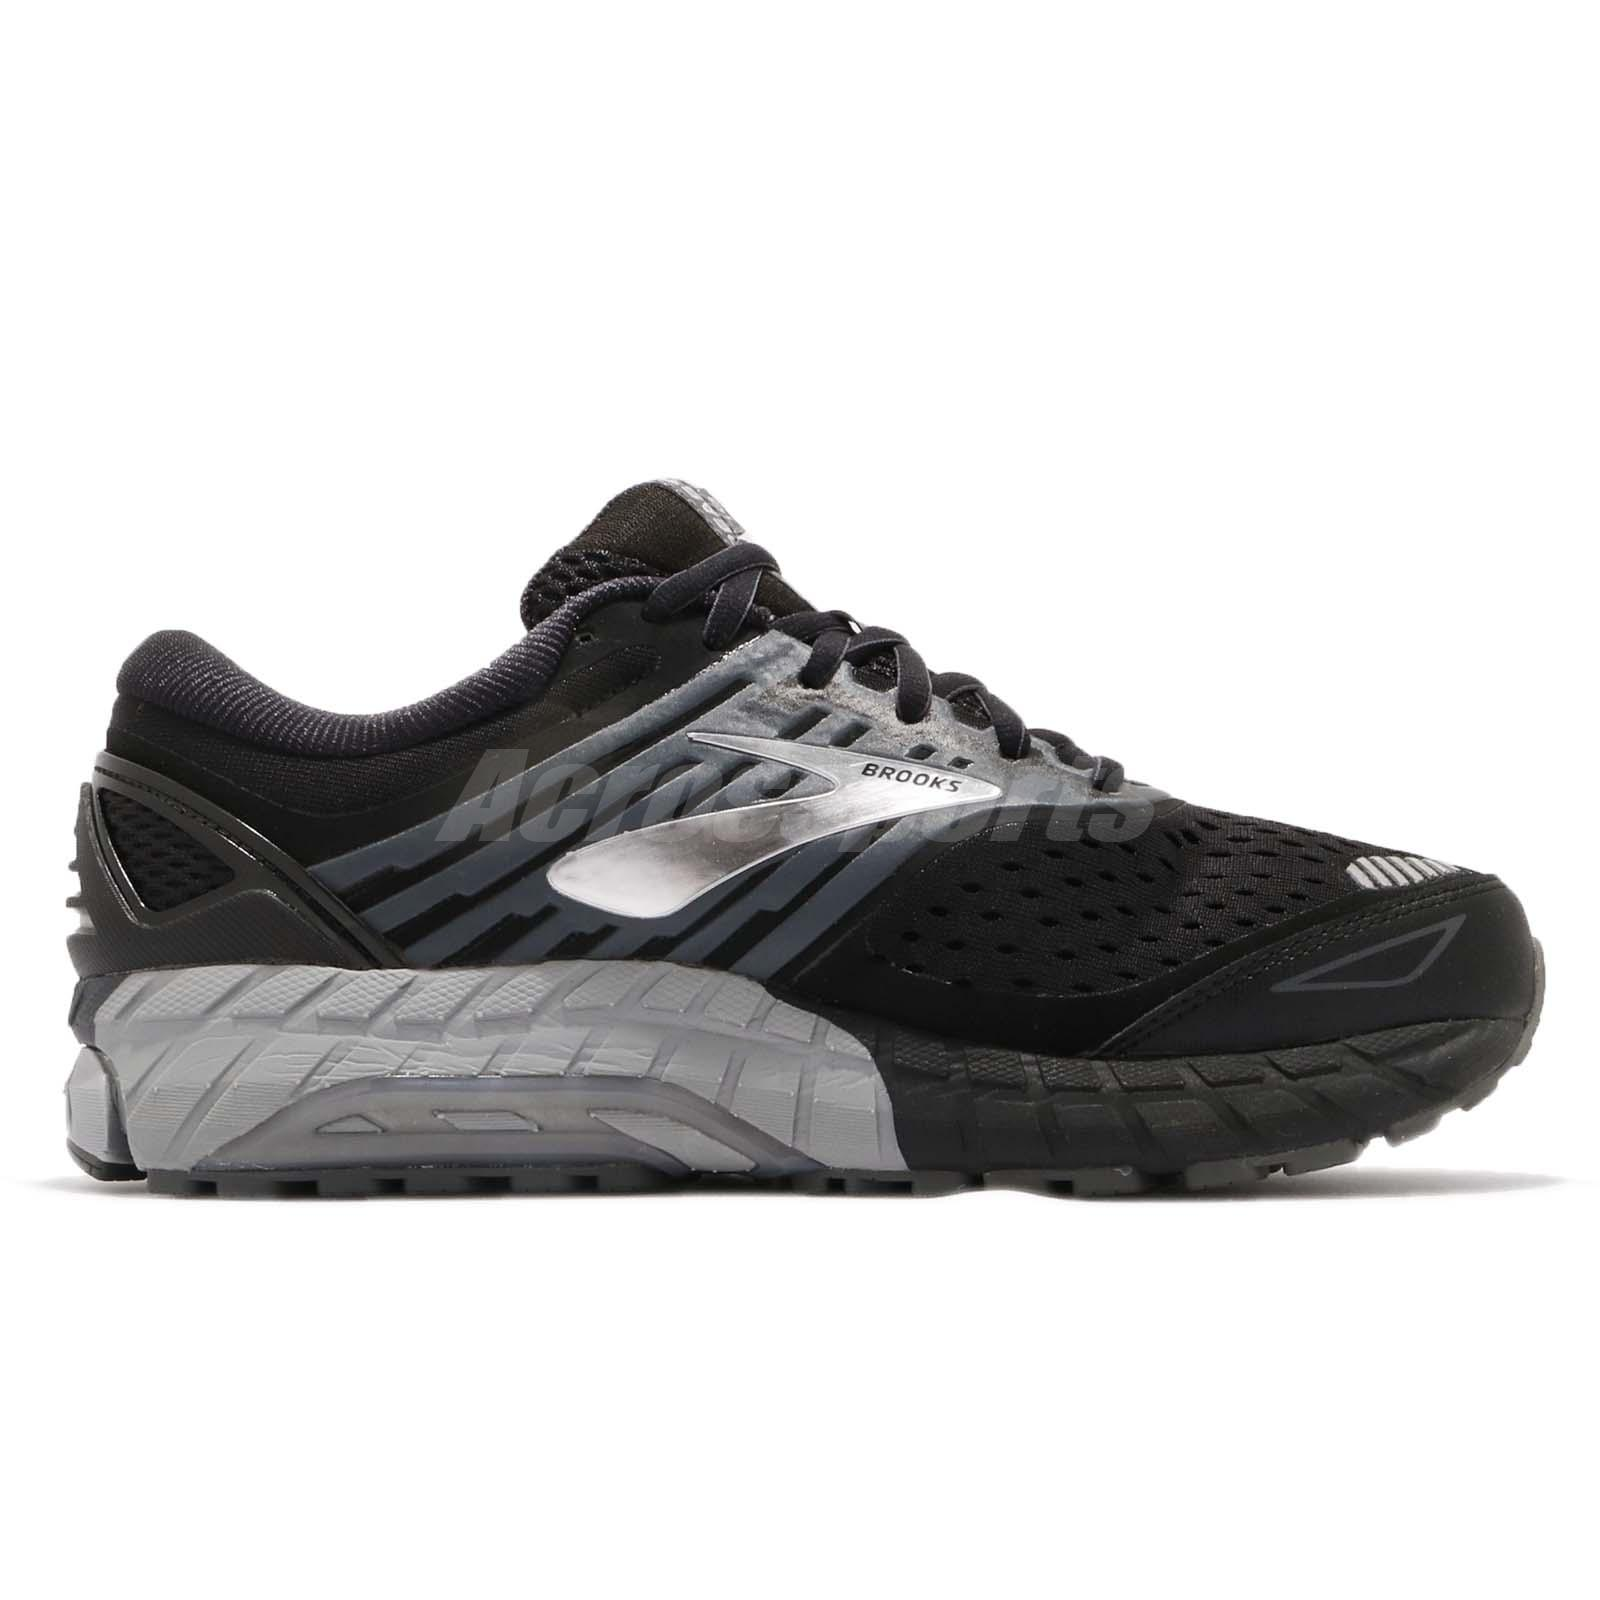 aae8860177109 Details about Brooks Beast 18 4E Extra Wide Black Grey Silver Men Running  Shoes 110282 4E